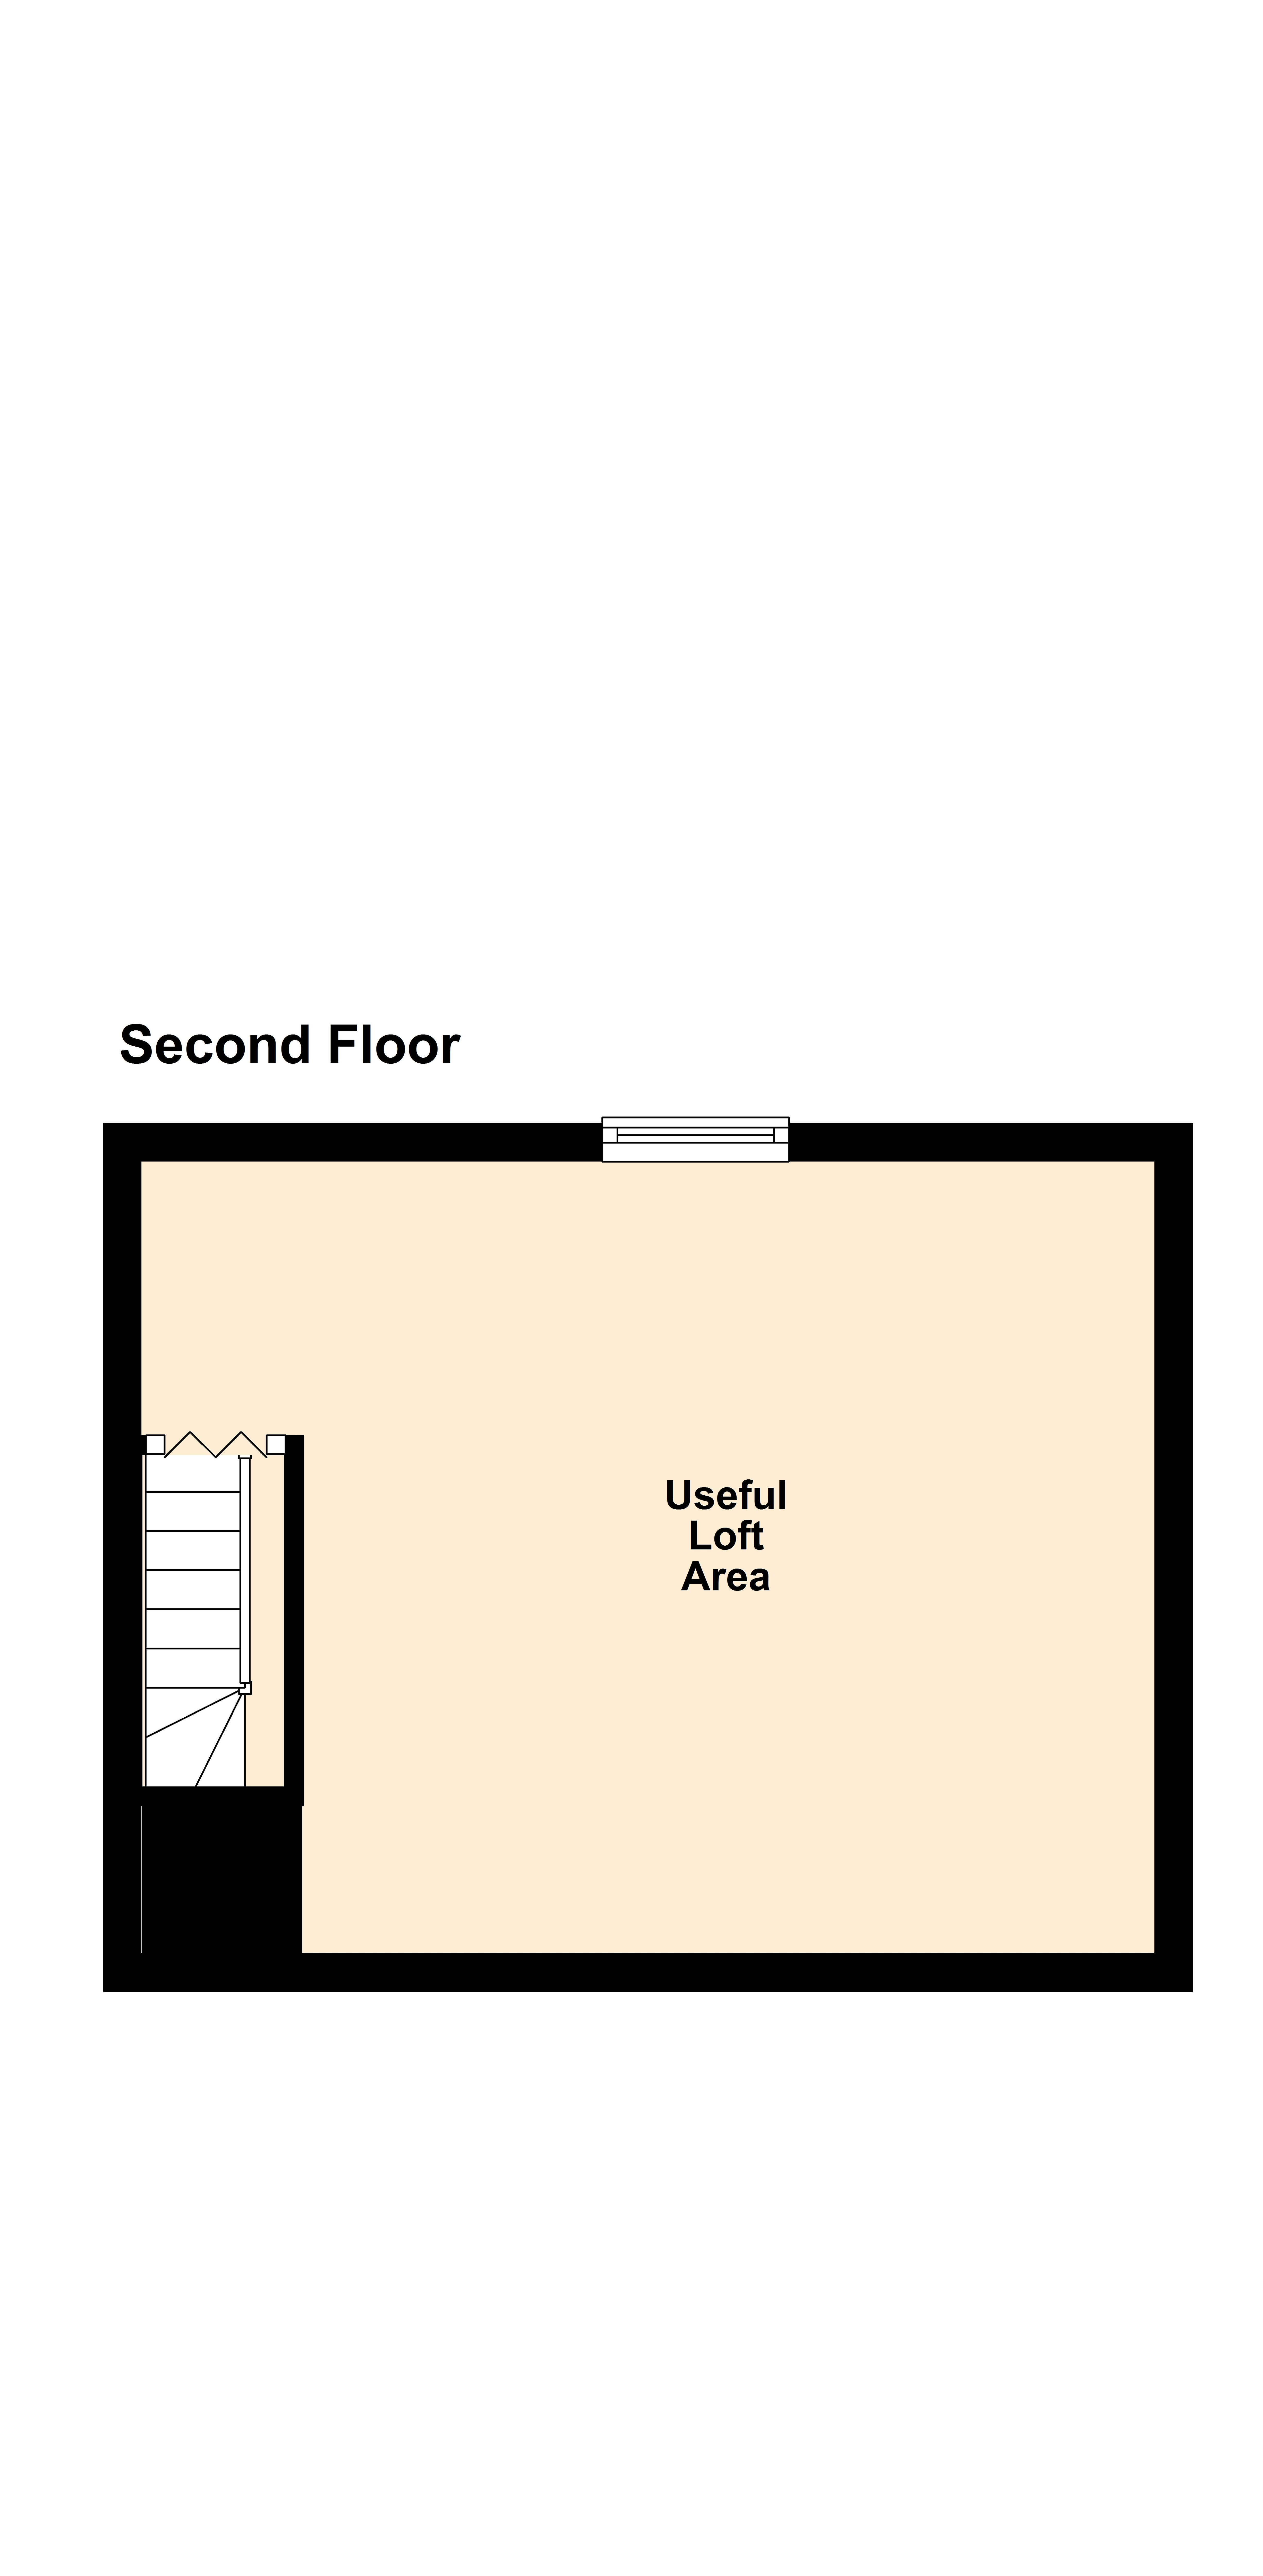 Useful Loft Area